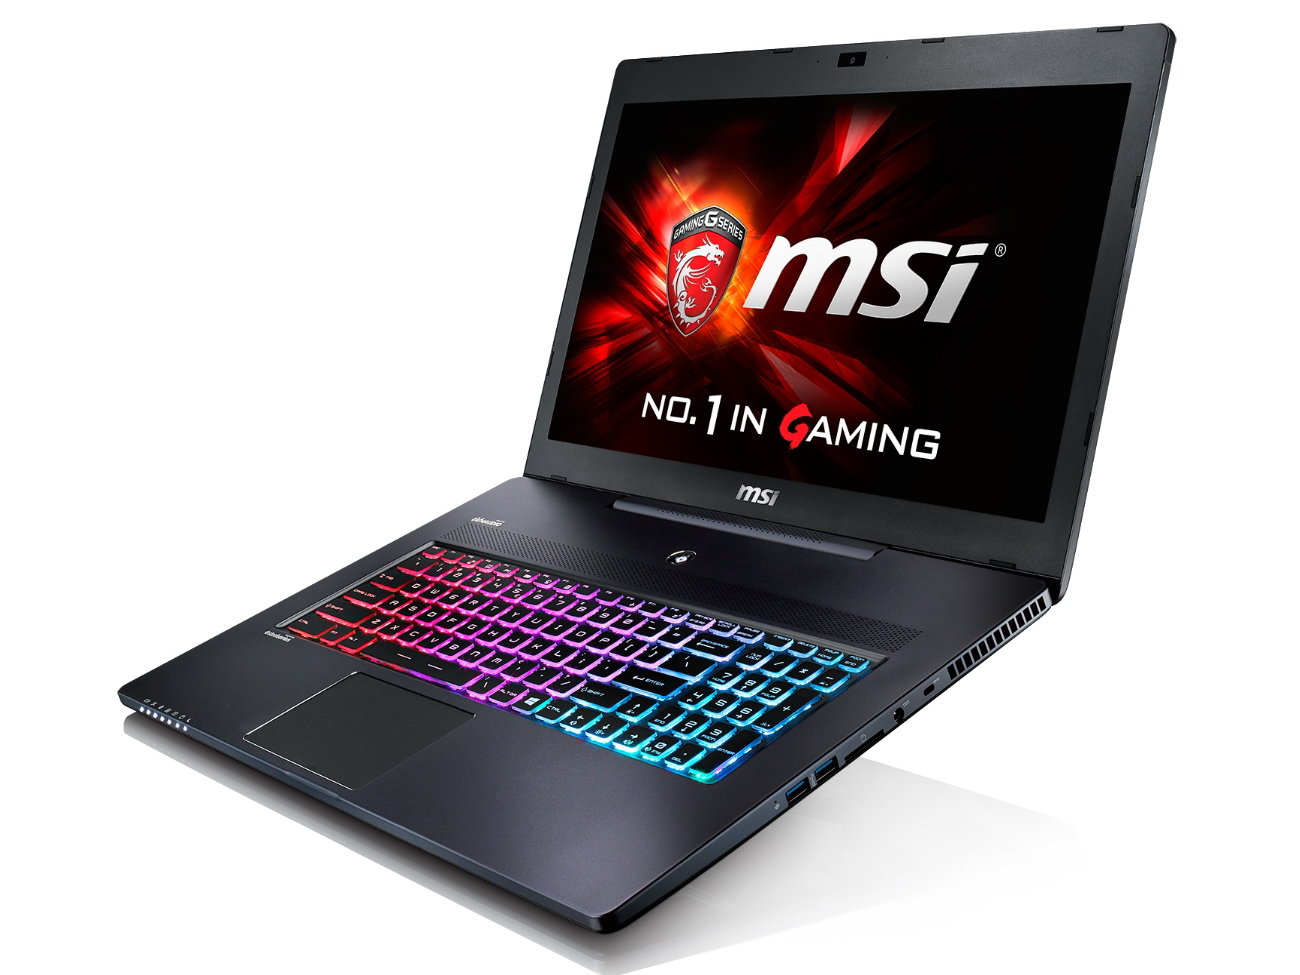 MSI GS70 6QE Stealth Pro Notebook Review 153555 0 furthermore Garmin Fenix 2 Review Smart Notifications From Android Devices furthermore Logitech Wireless Mouse Orange M187 together with Best Fitness Trackers With Smart Notifications 2015 as well 541. on razer wearable